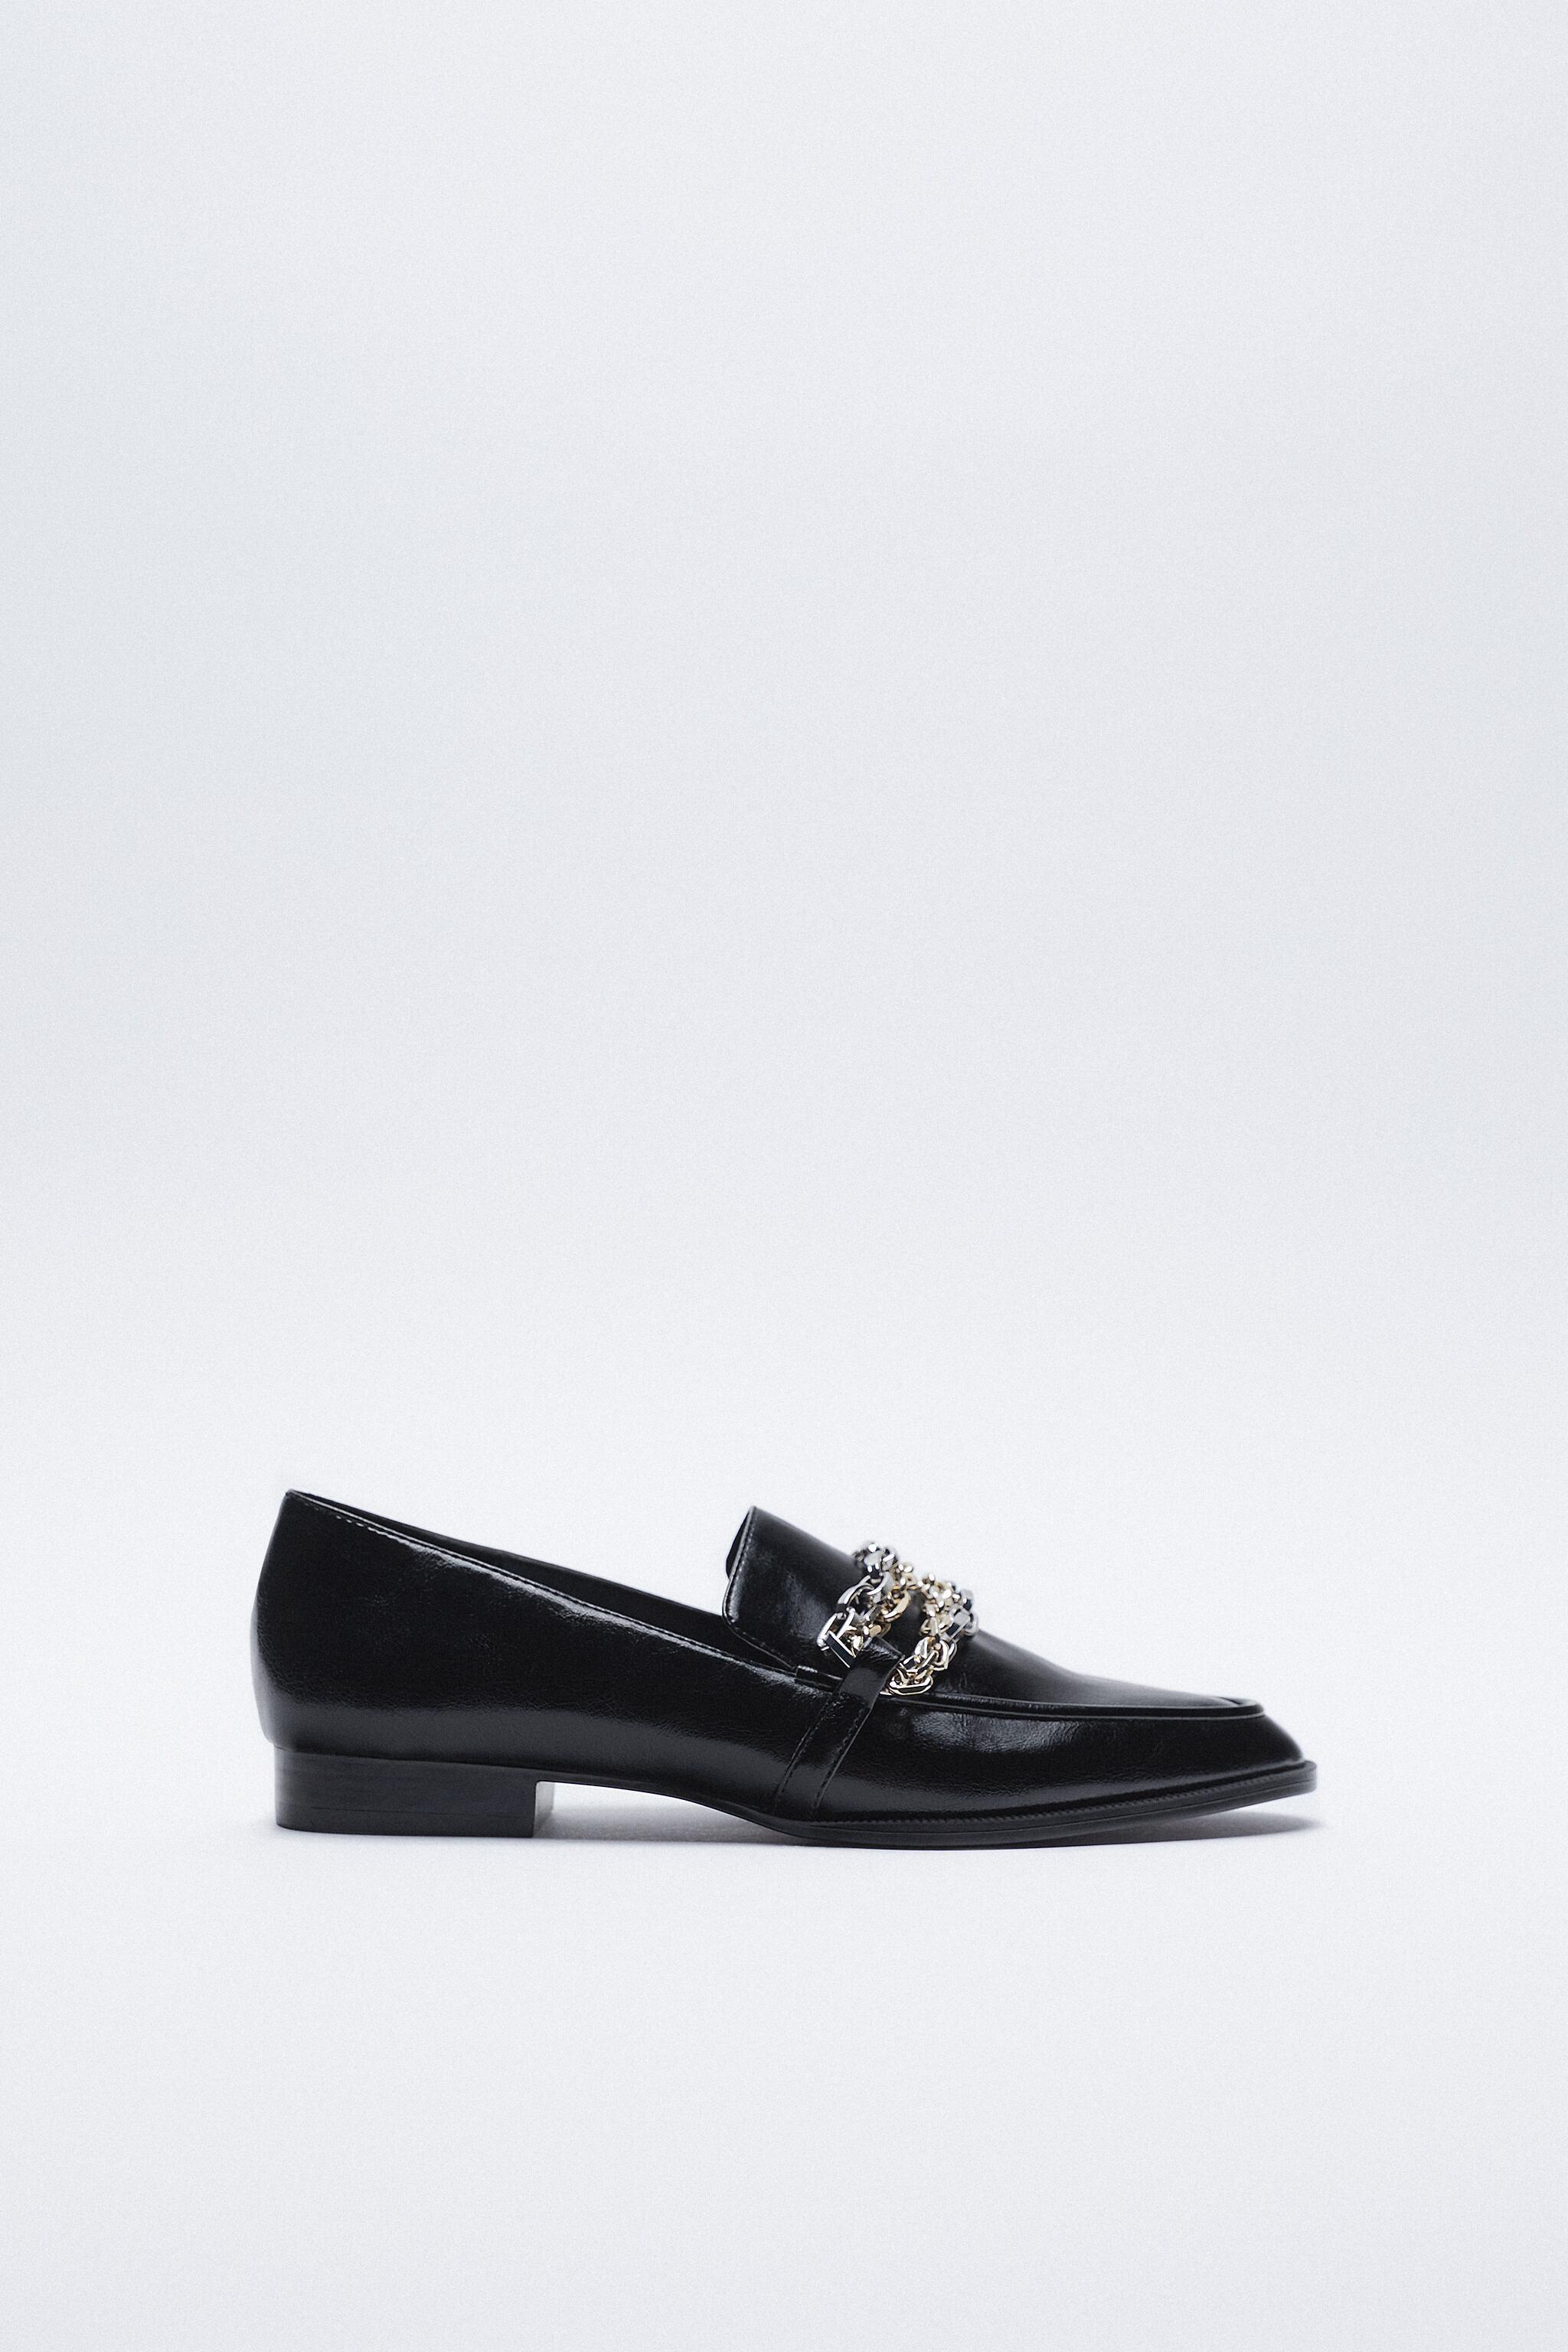 LOW HEEL MULTI-CHAIN LOAFERS